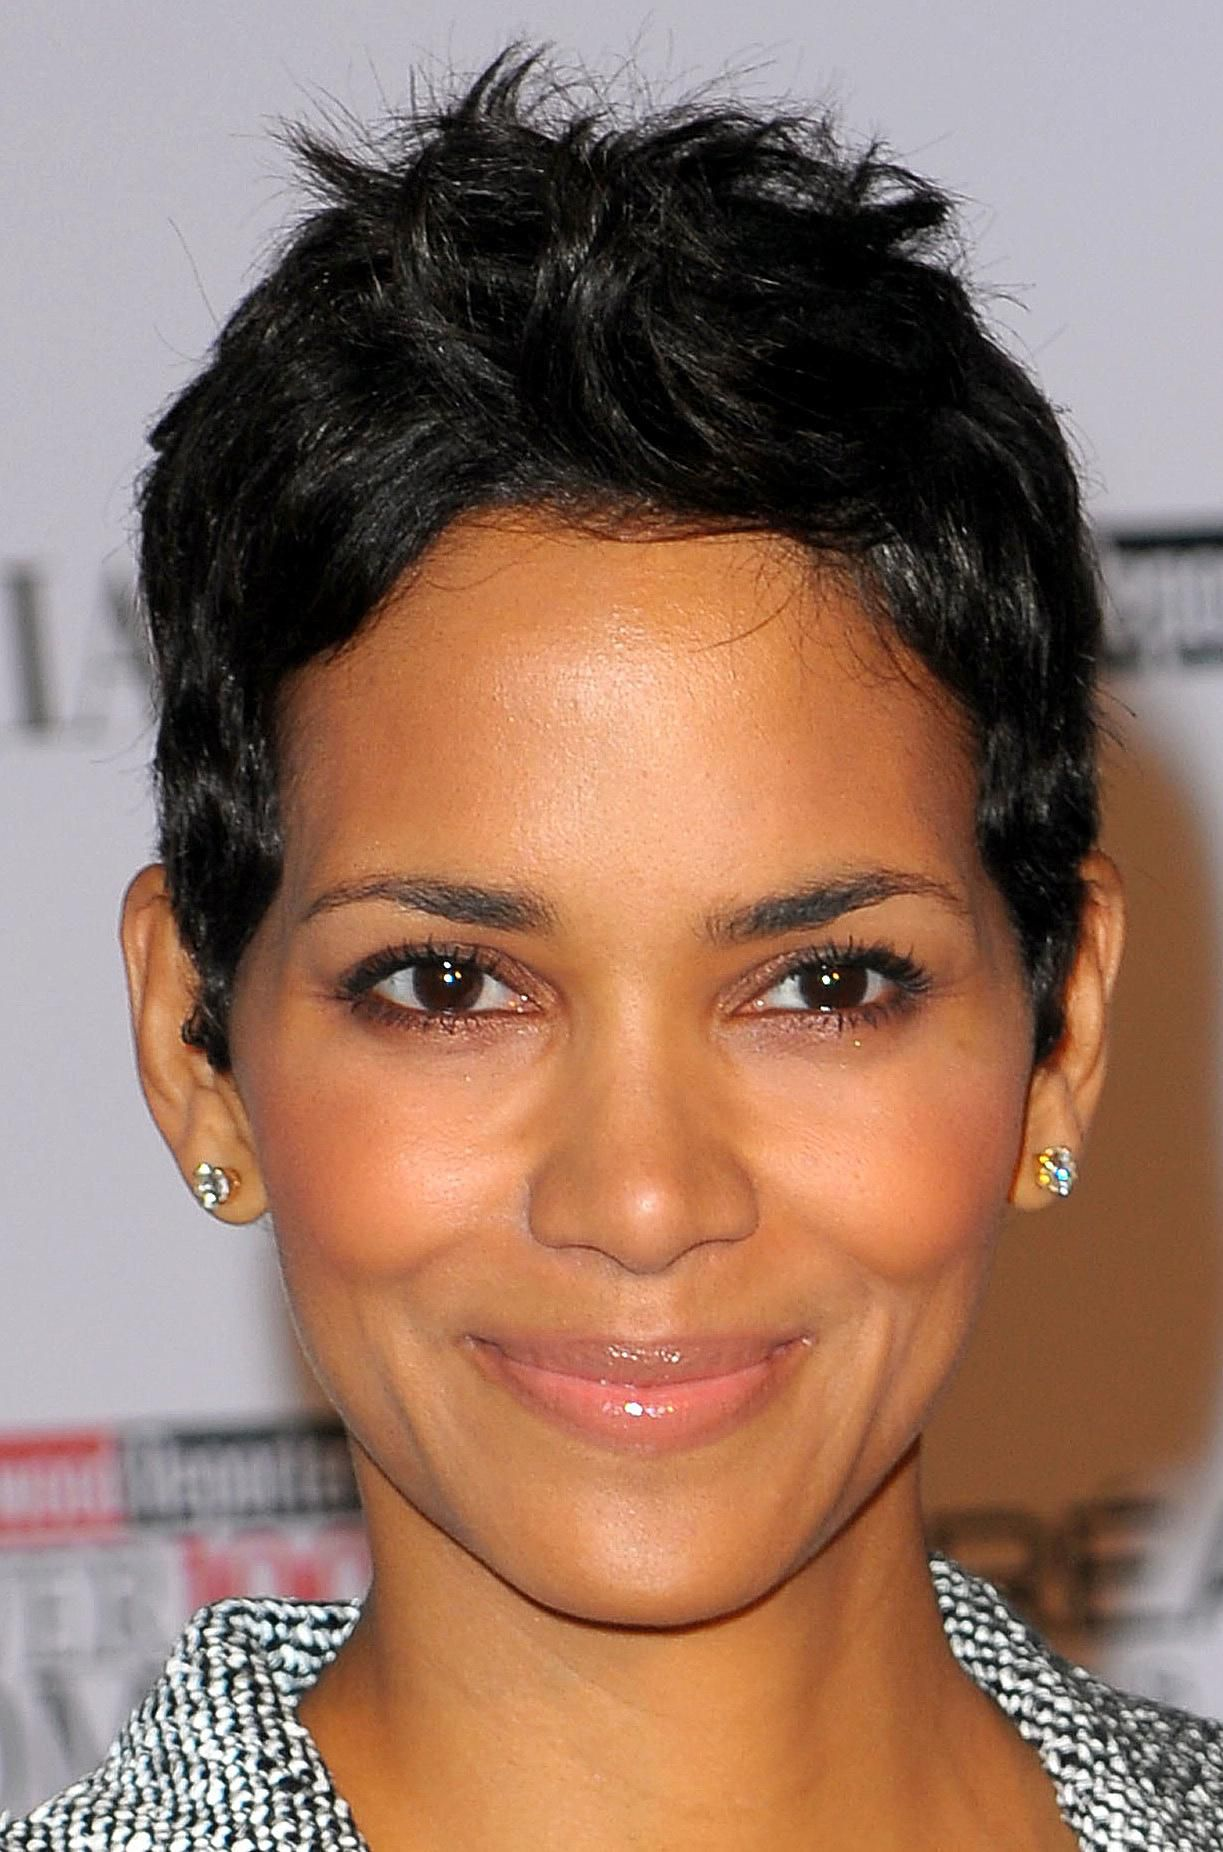 Pixie Hairstyles The Best Super Short Cuts